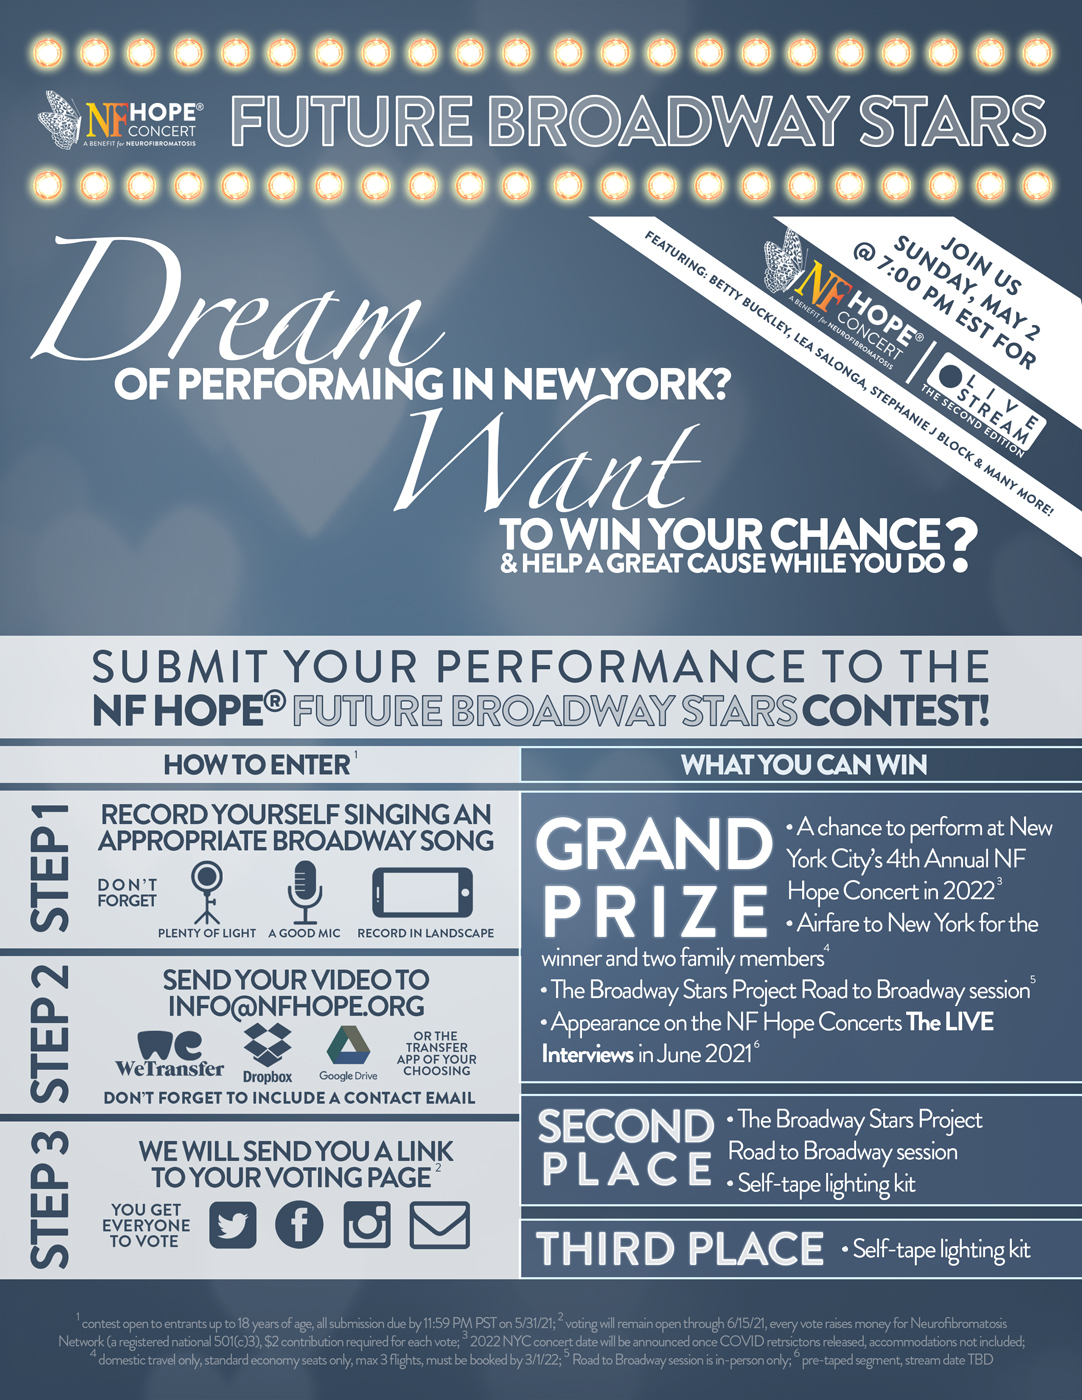 Enter the NF Hope Future Broadway Stars Contest